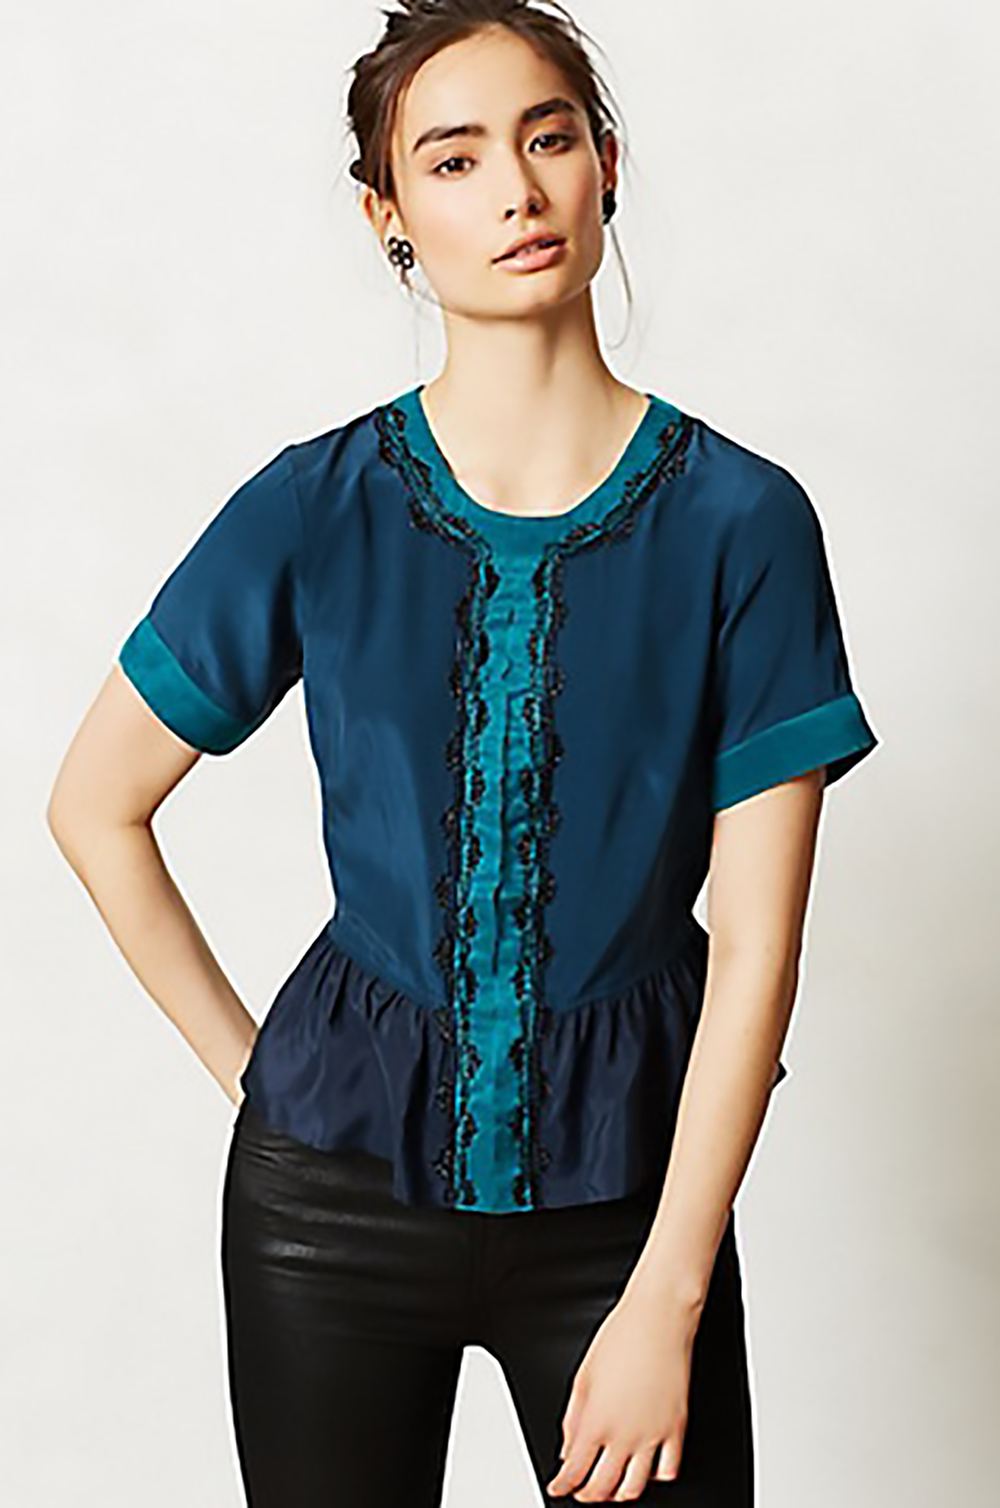 anthropologie channeled ciel top holiday separates 1500.jpg